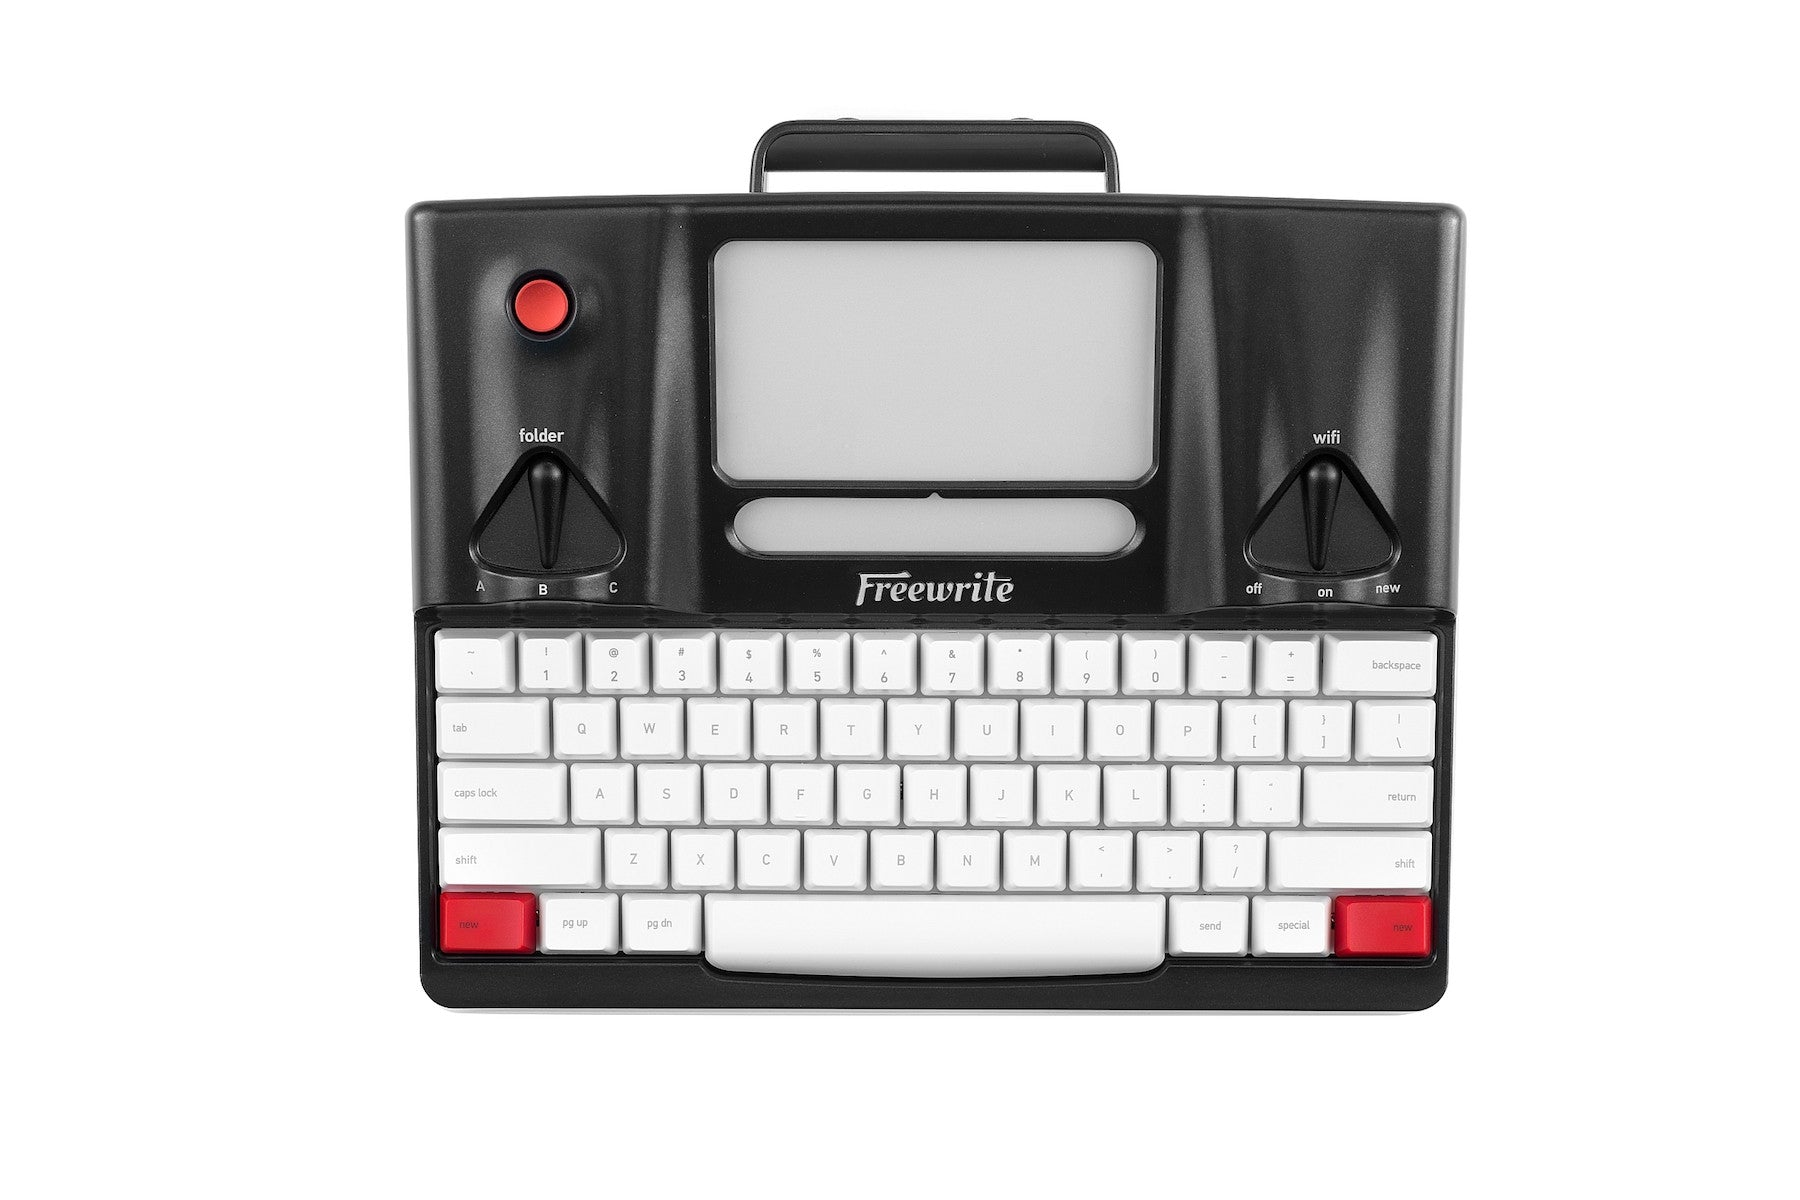 Freewrite - Akin Tech